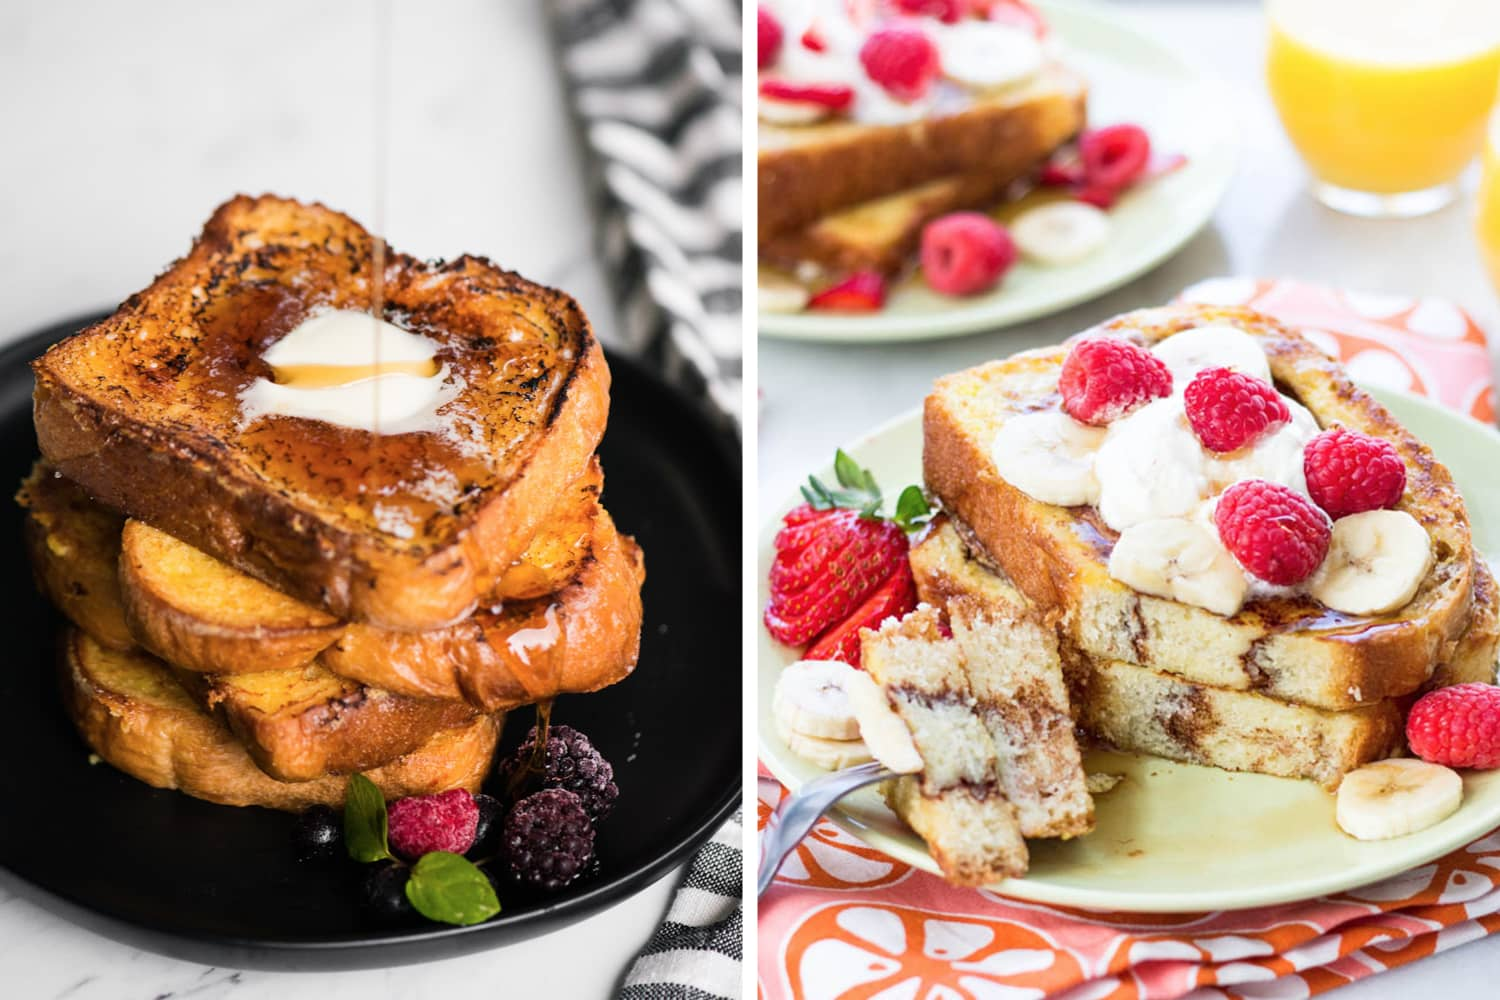 15 Absurdly Delicious French Toast Recipes to Make Right Now